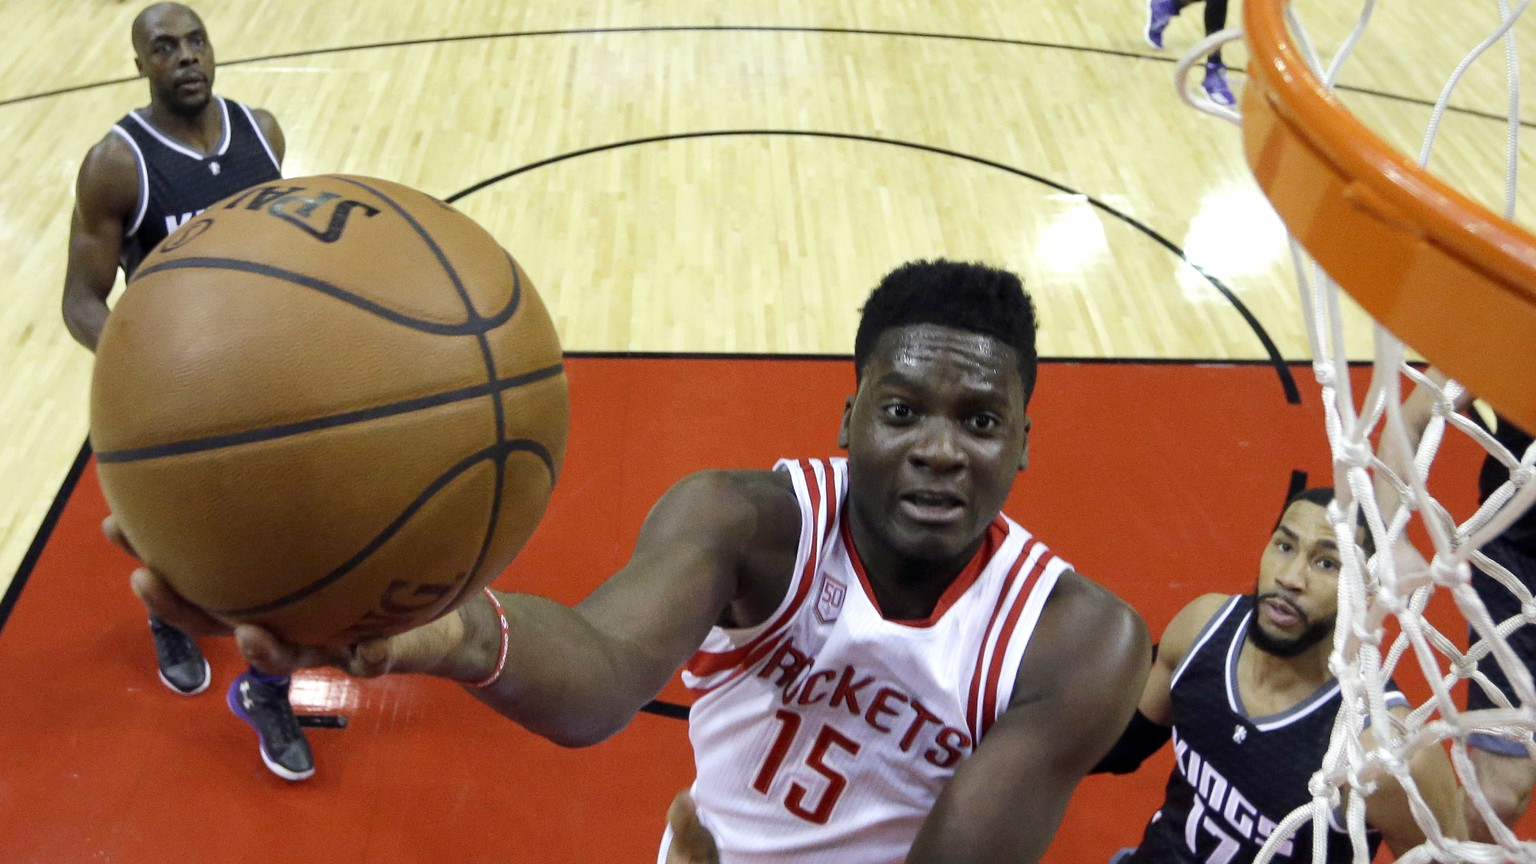 Houston Rockets' Clint Capela (15) shoots as Sacramento Kings' Garrett Temple (17) defends during the first half of an NBA basketball game Wednesday, Dec. 14, 2016, in Houston. (AP Photo/David J. Phillip)